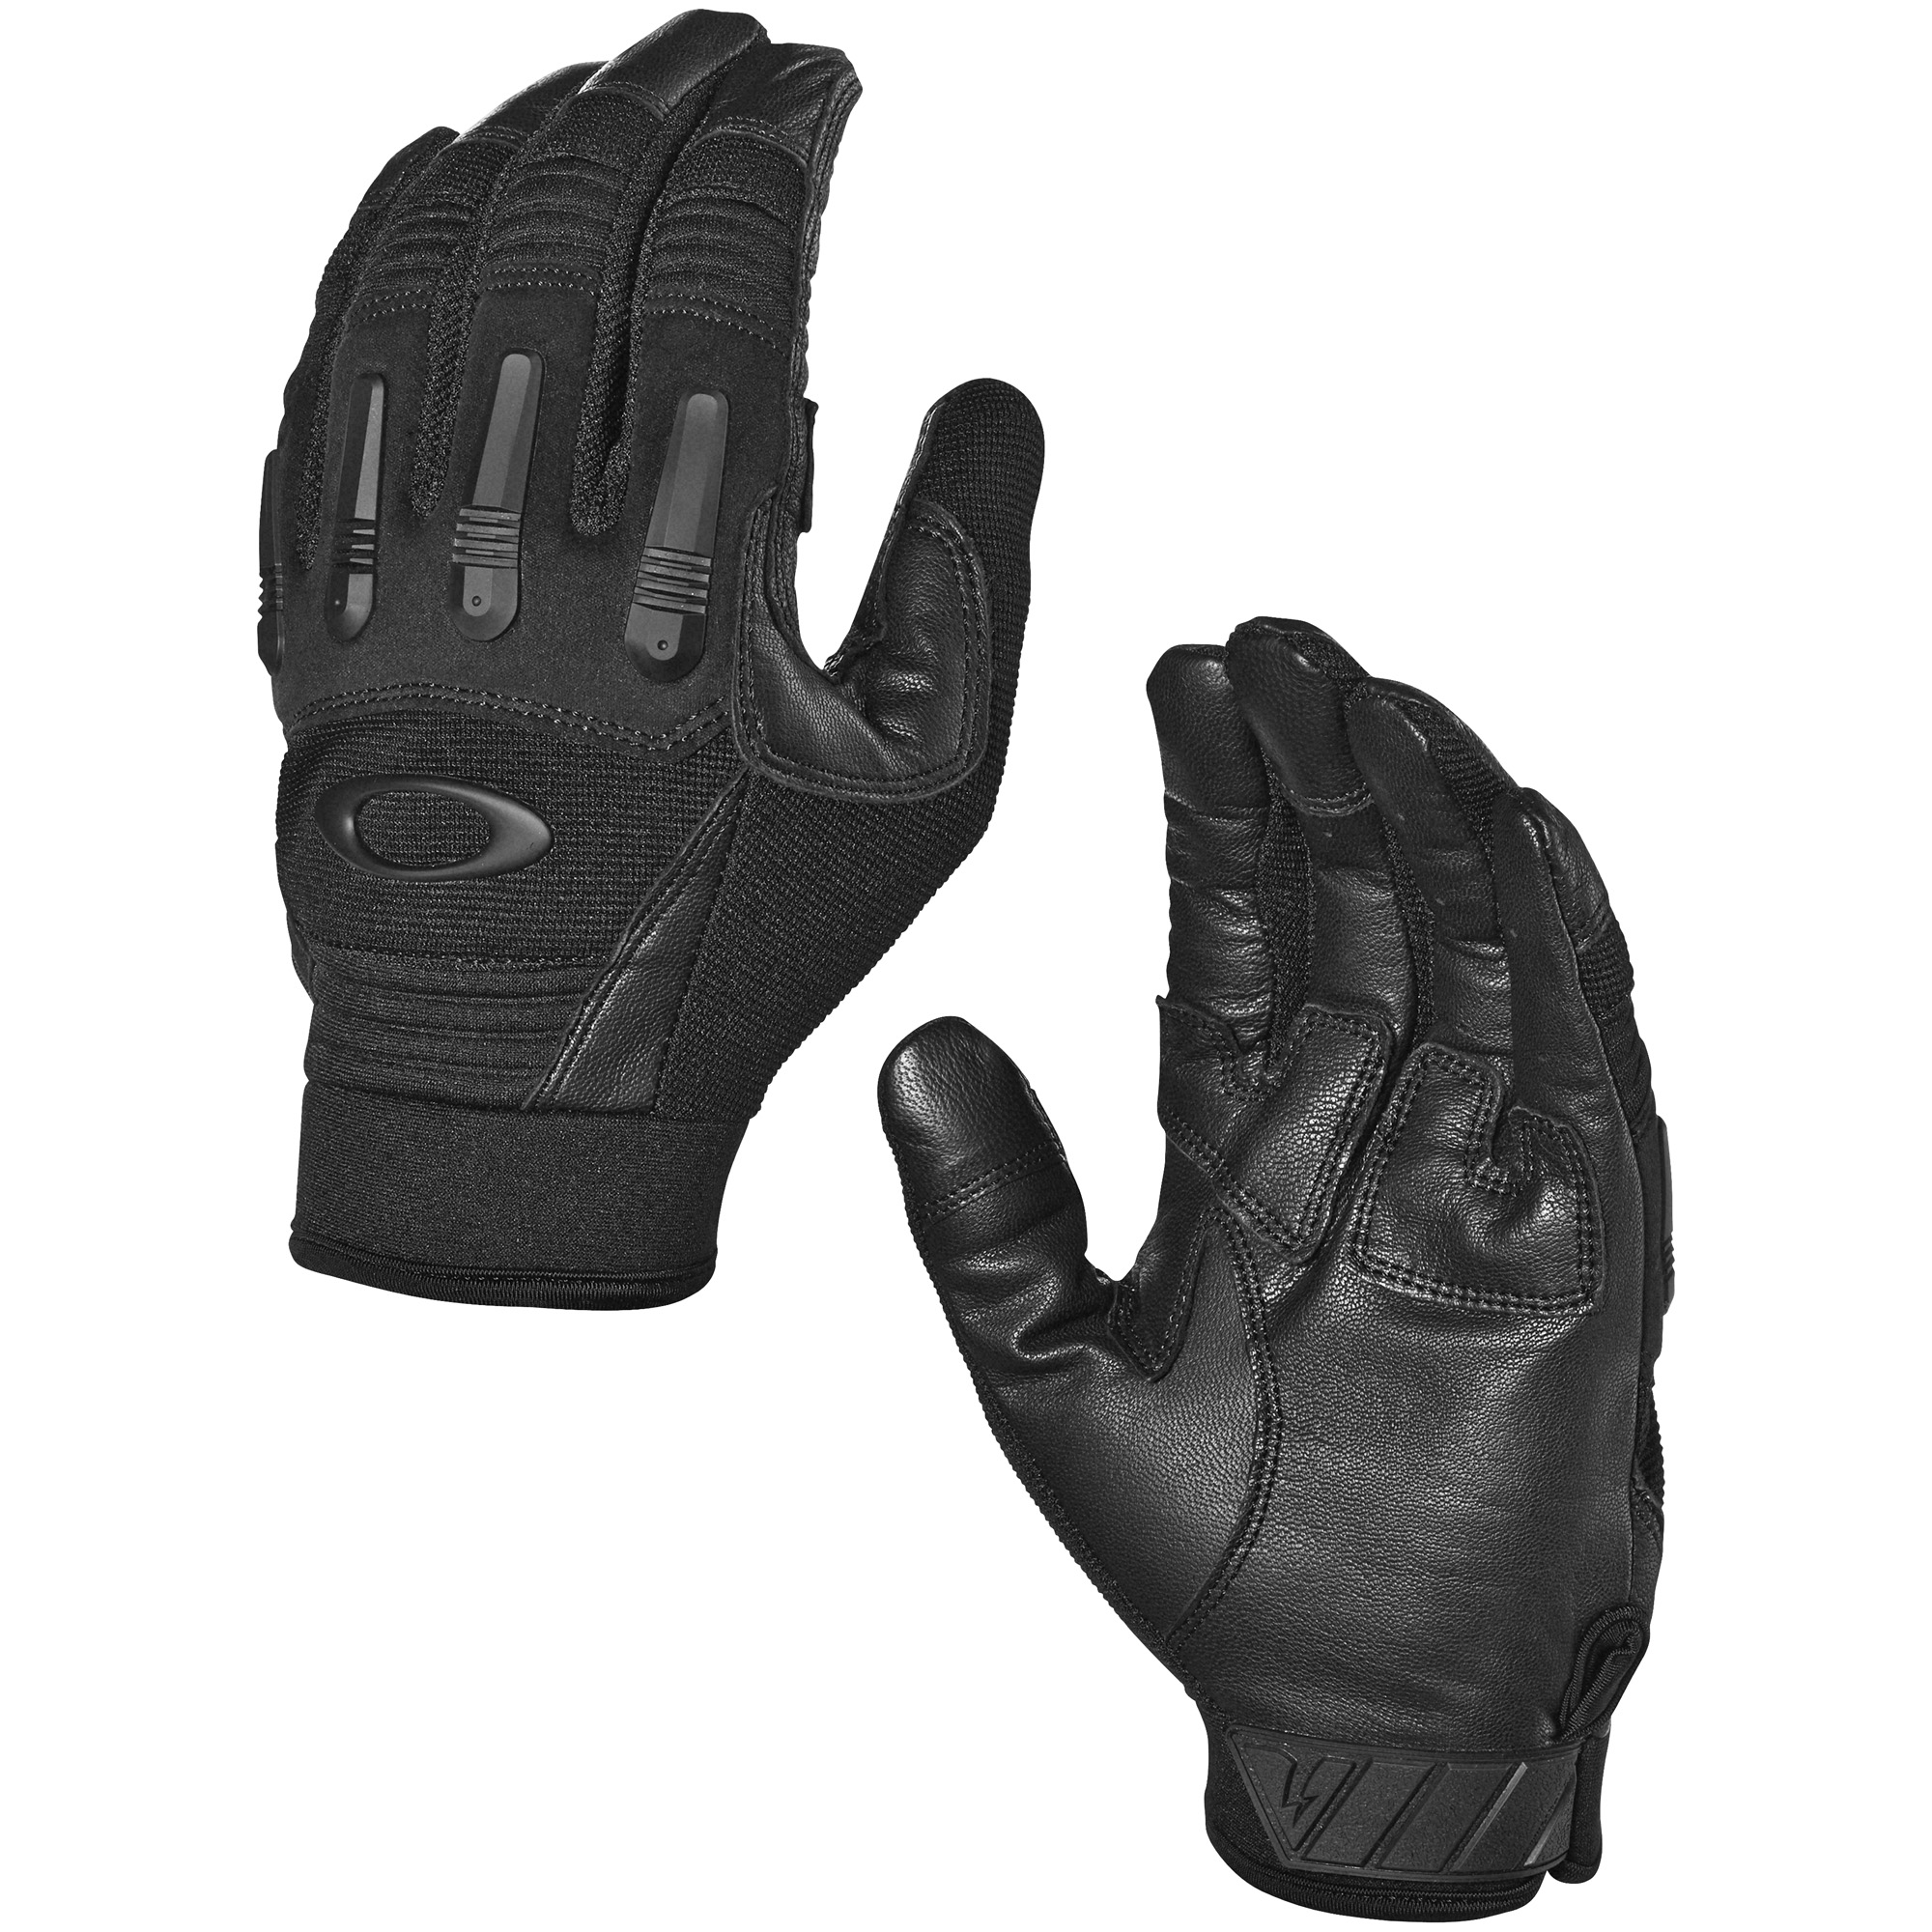 "The rugged and protective Transition Tactical Gloves are built to withstand the rigors of any rough-and-tumble activity. Airprene and lightweight ribspan paneling on these Oakley gloves combine with strategically placed suede and premium knuckle protection to provide comfort"" dexterity a tough barrier between you and heavy-duty equipment that can cause injury."